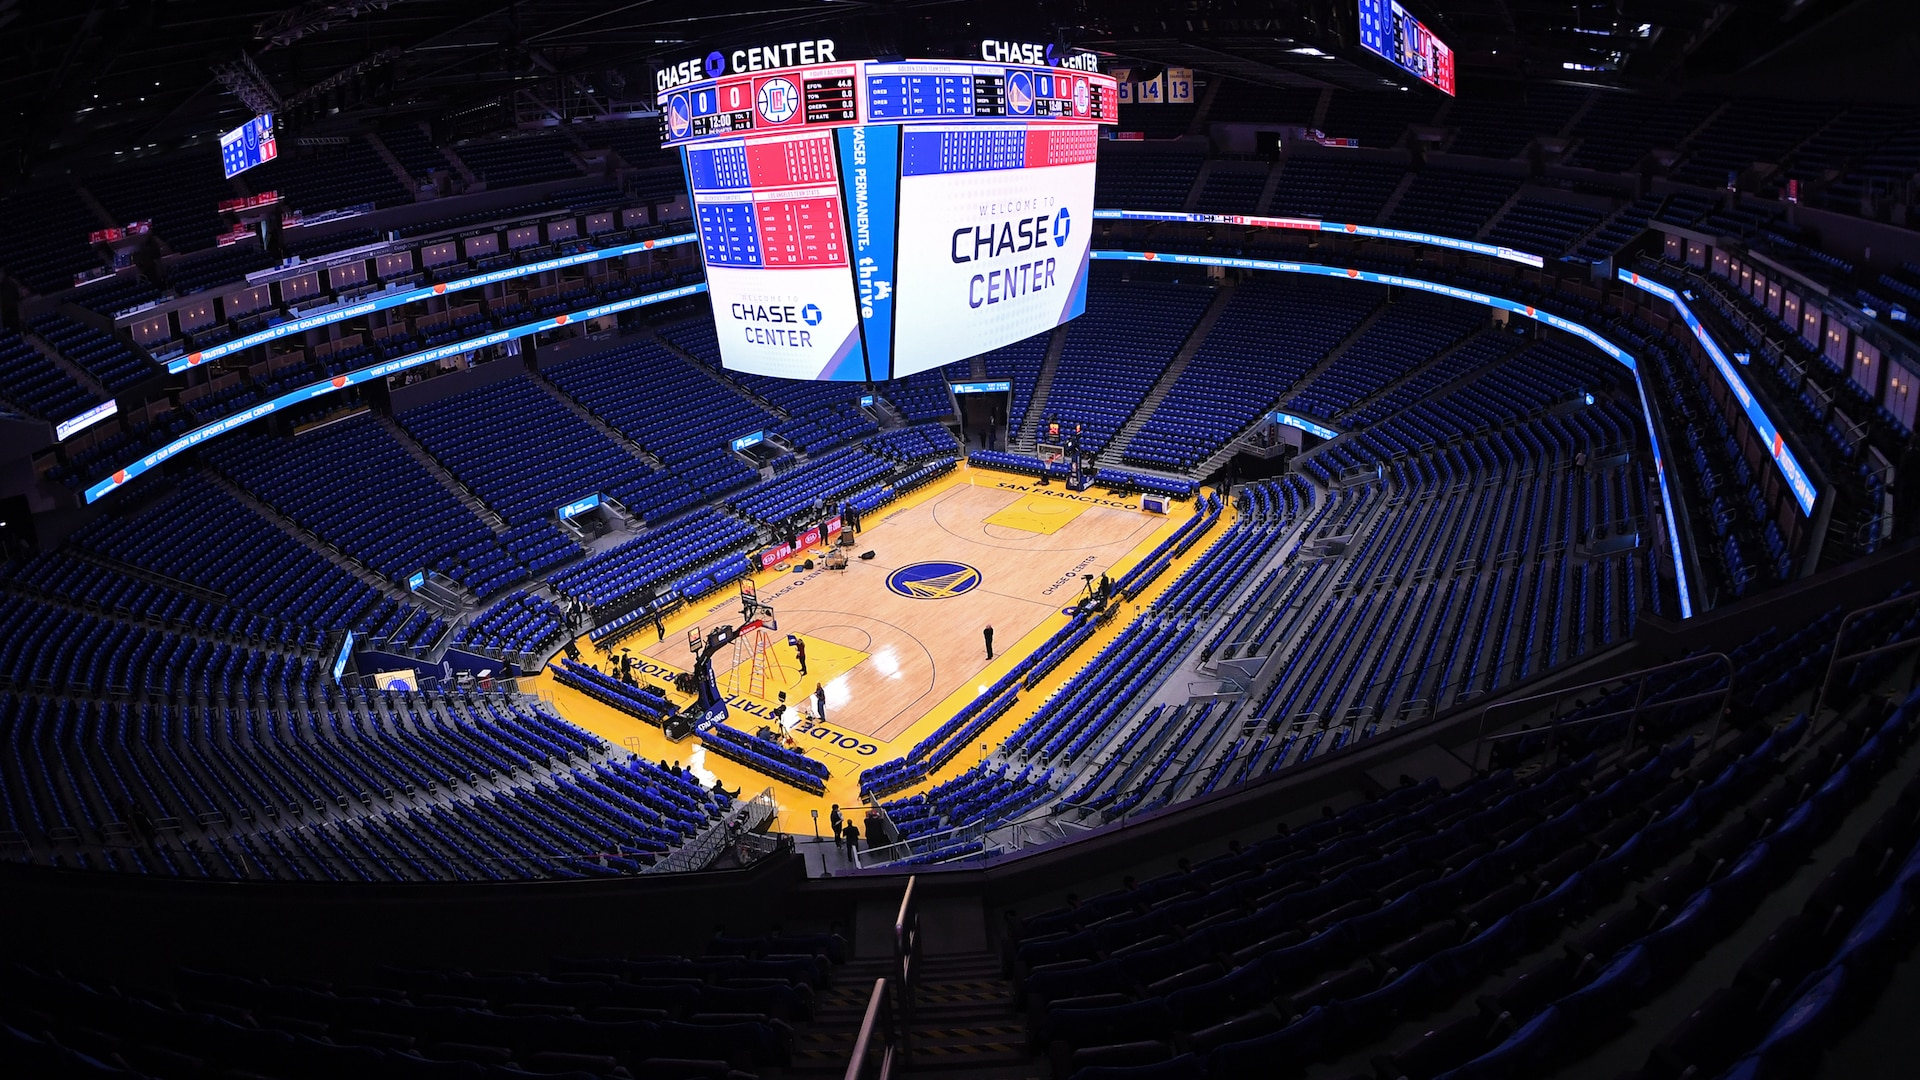 Warriors to play without fans against Nets on Thursday